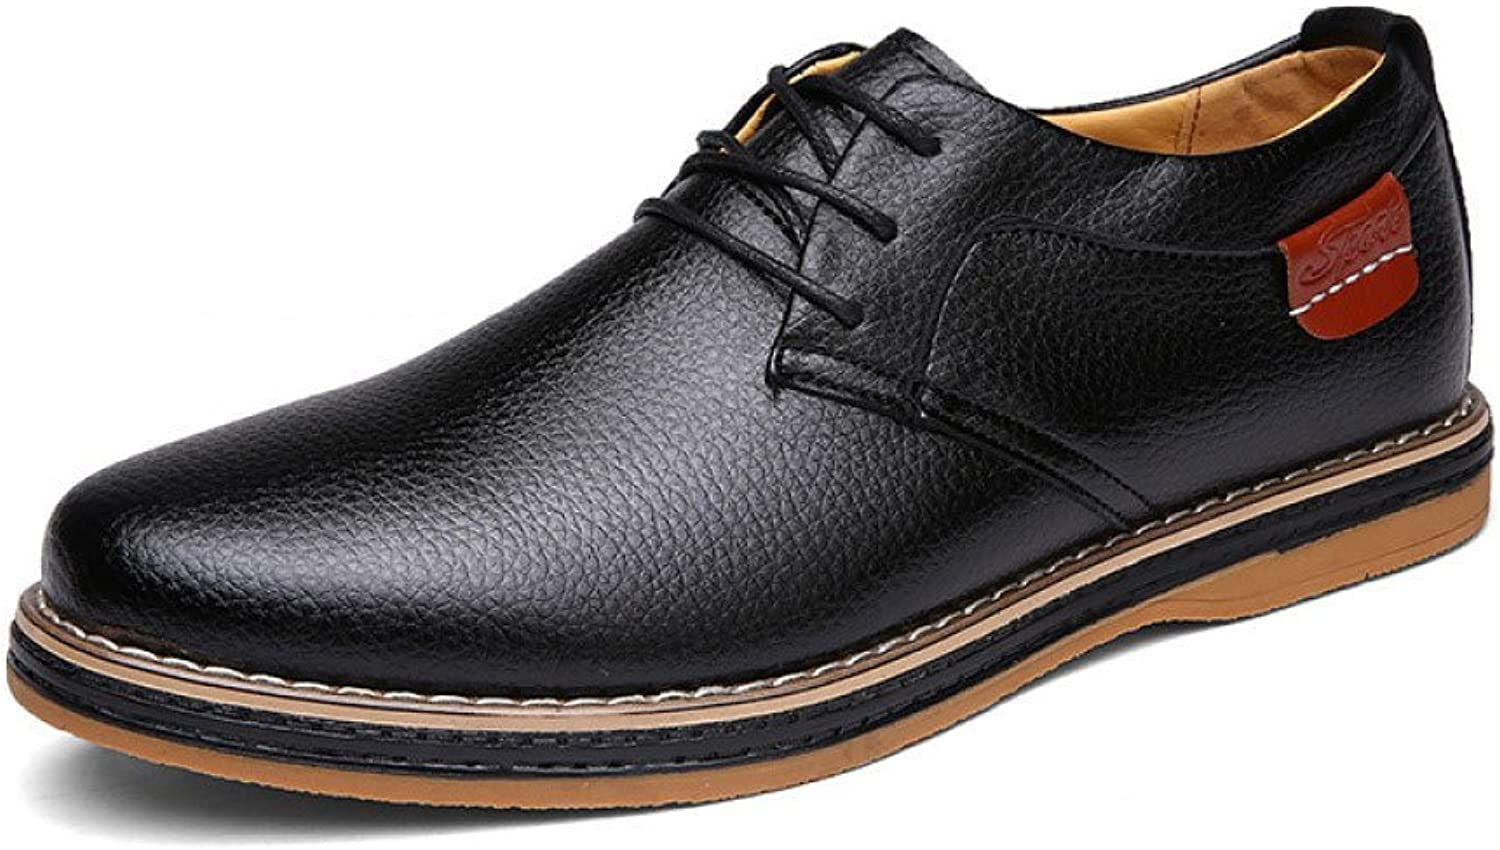 ASJUNQ Business Dress shoes with Comfortable,Black-42